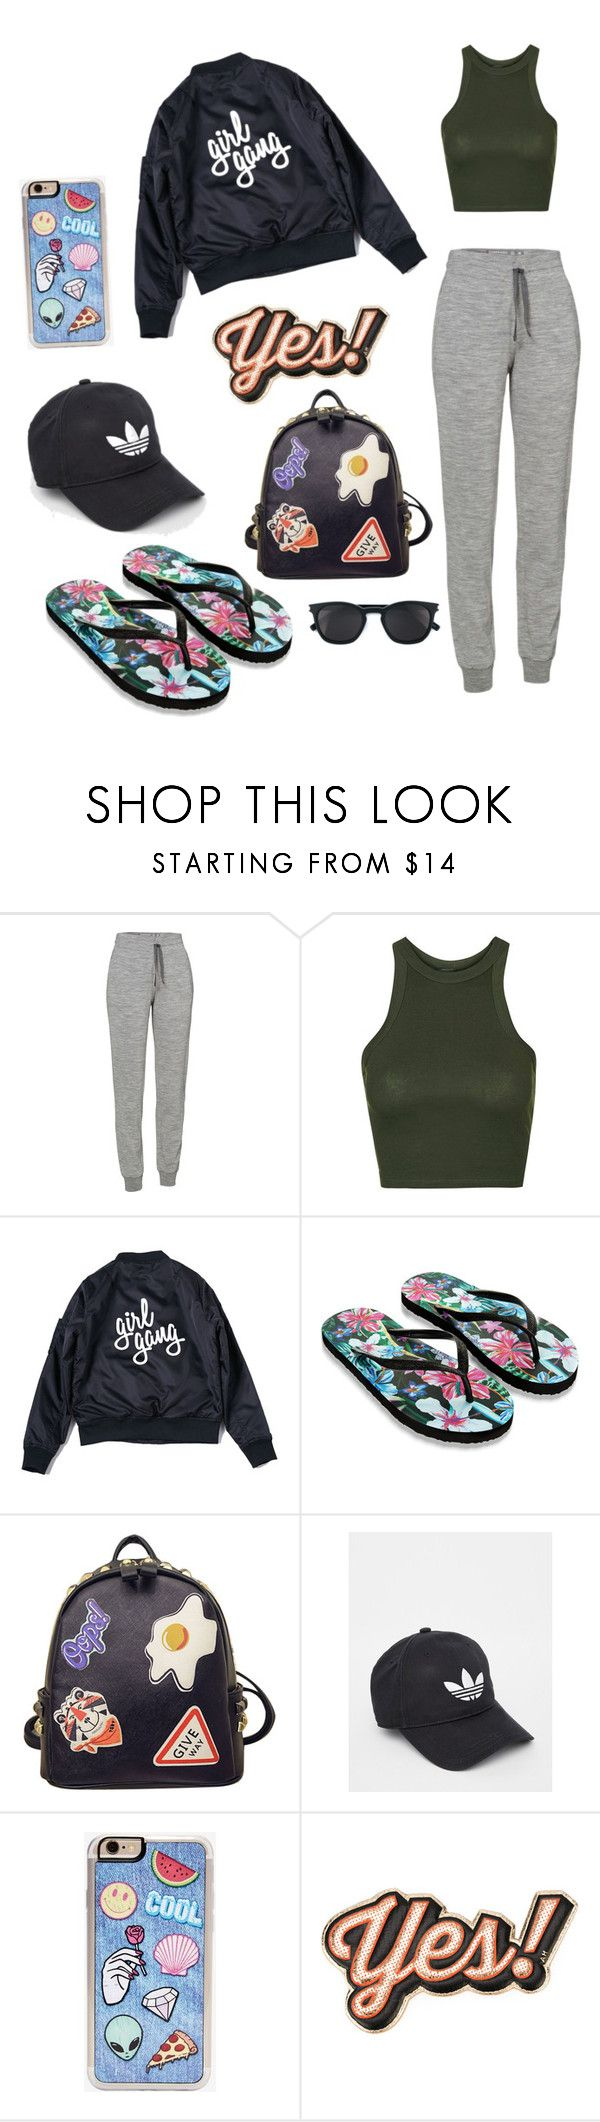 """Girl gang"" by mayarocha31 ❤ liked on Polyvore featuring Icebreaker, Topshop, Accessorize, WithChic, adidas, Zero Gravity, Anya Hindmarch and Yves Saint Laurent"